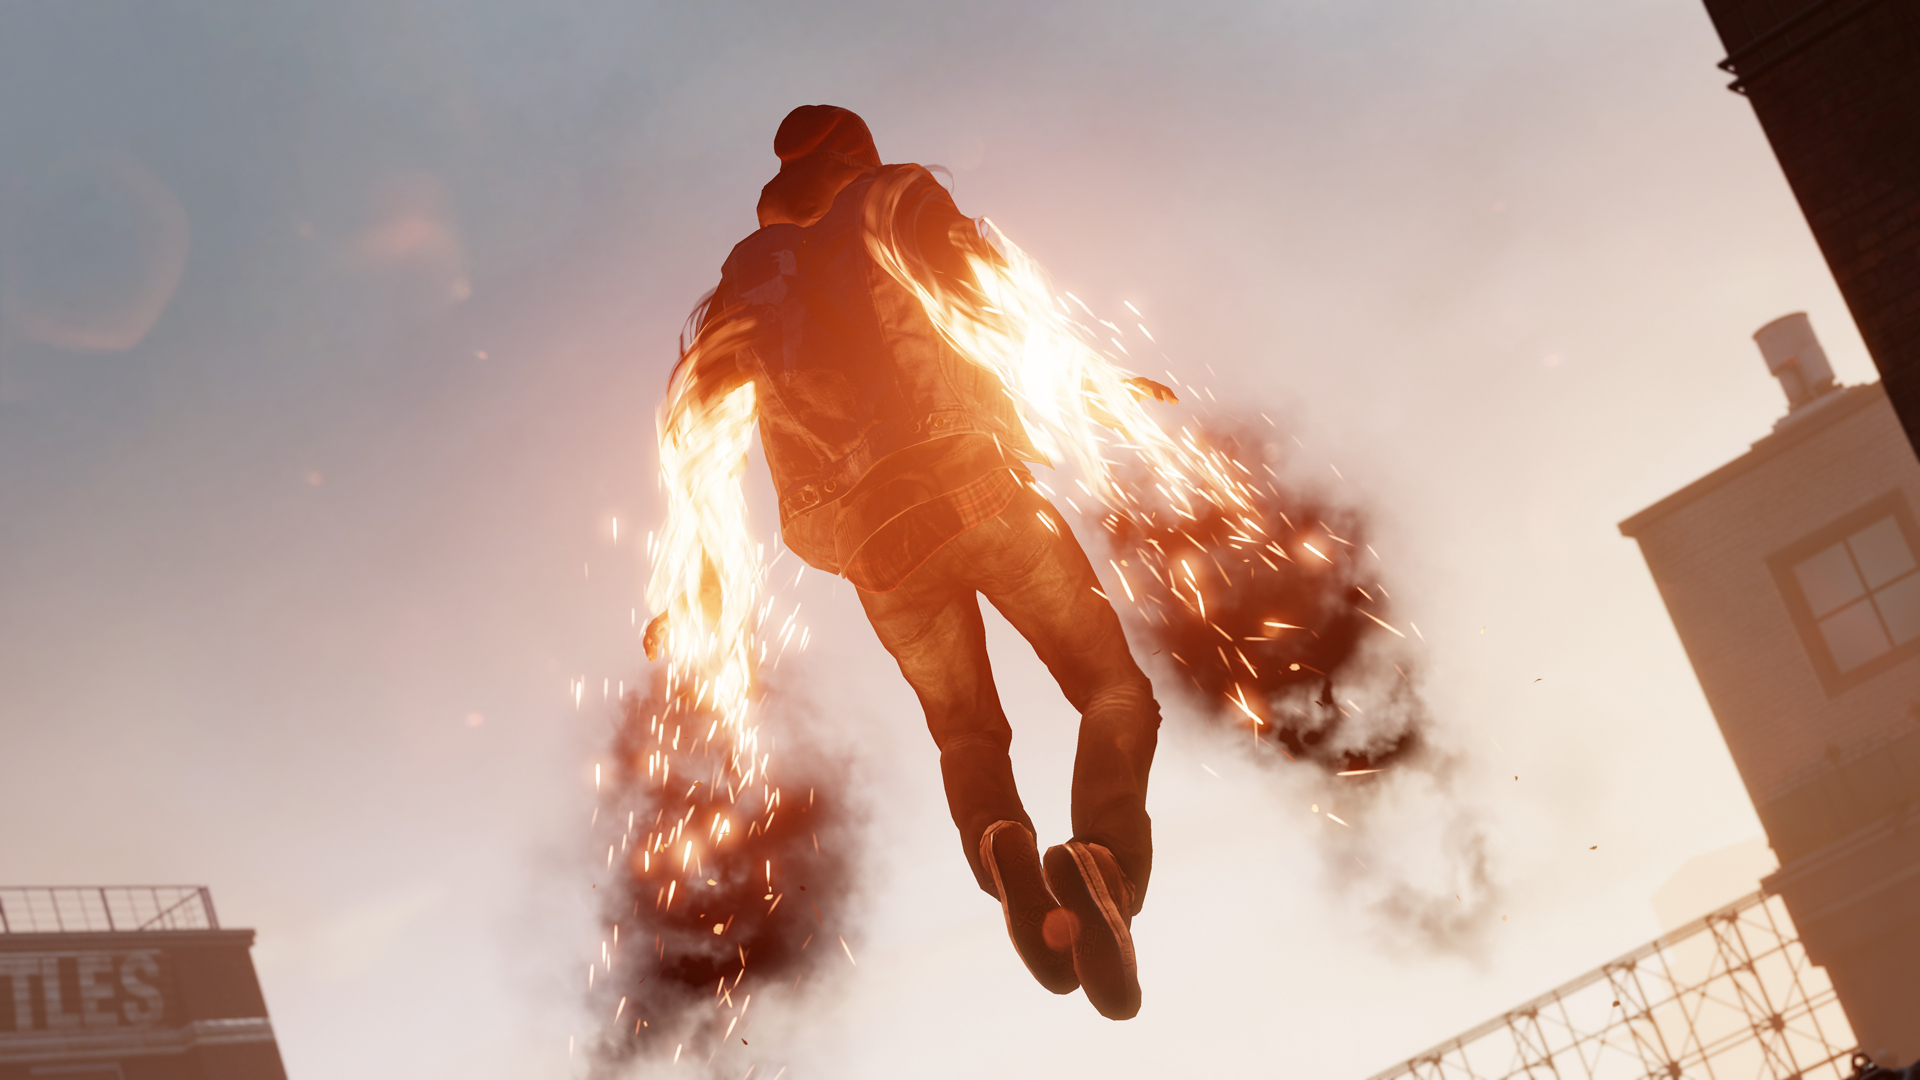 43125-1370953397-infamous-second-son-2